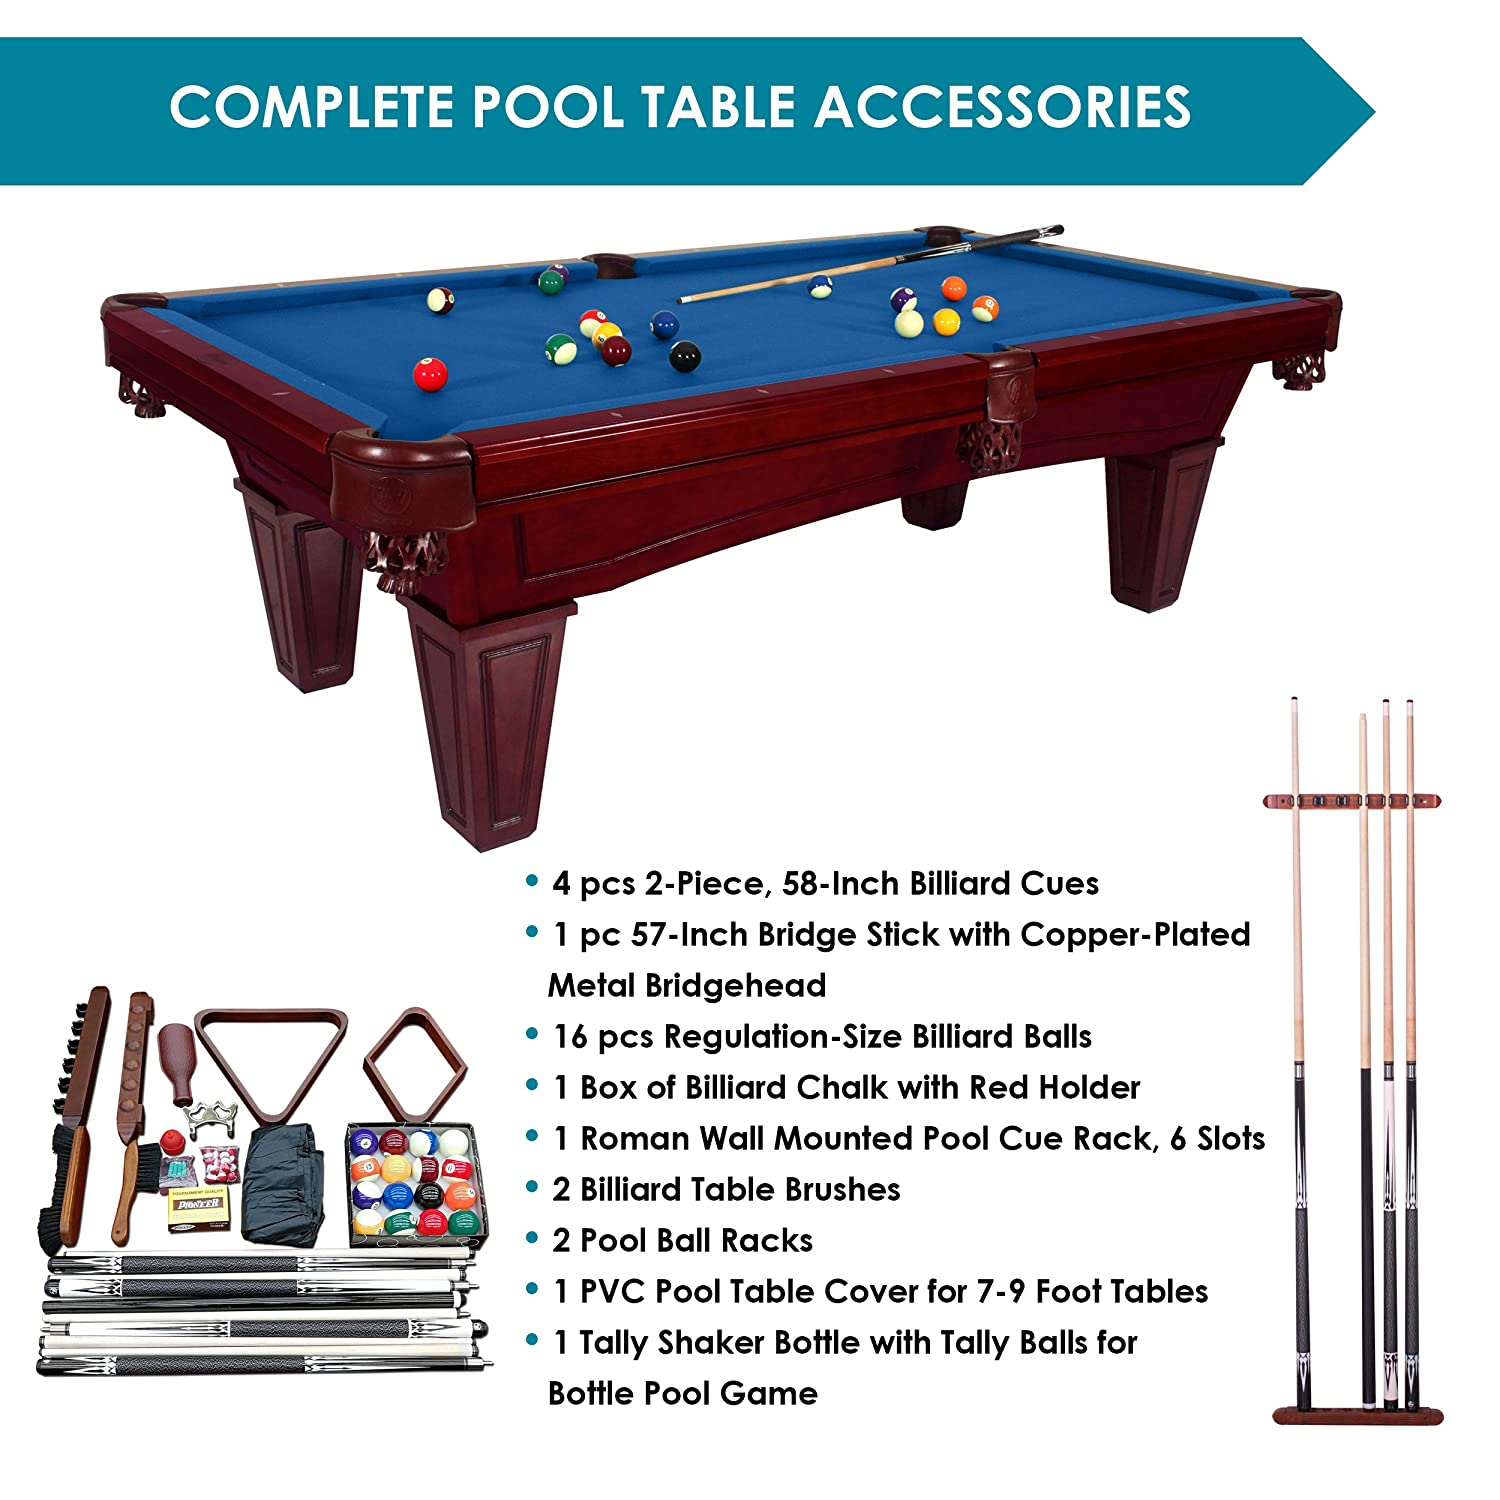 Etonnant Amazon.com : Harvil Toscana Black Cherry Slate Pool Table 8 Foot With Blue  Felt. Includes On Site Delivery, Installation And Accessories : Sports U0026  Outdoors